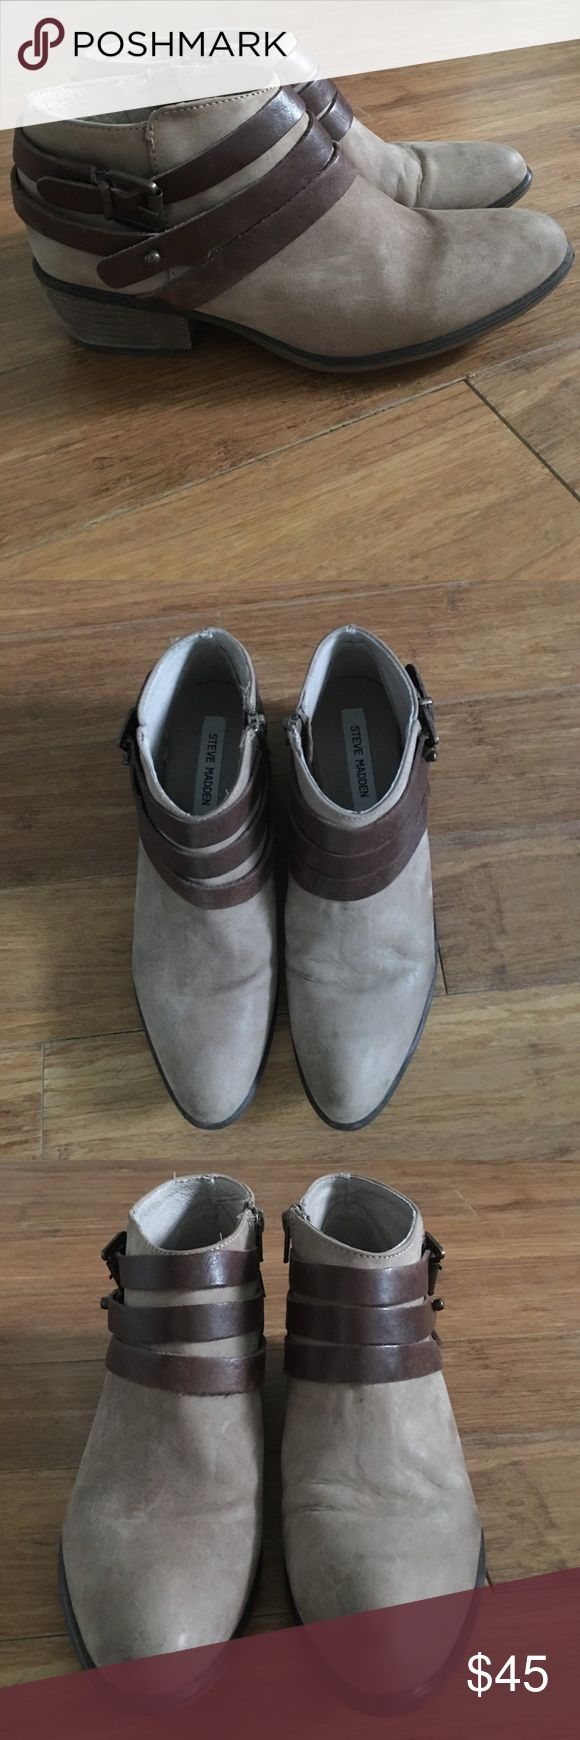 Steve Madden Tan Suede Booties with Buckles-Size 8 Steve Madden Tan Suede Booties with Buckles. Great used condition. A great fall staple! Steve Madden Shoes Ankle Boots & Booties